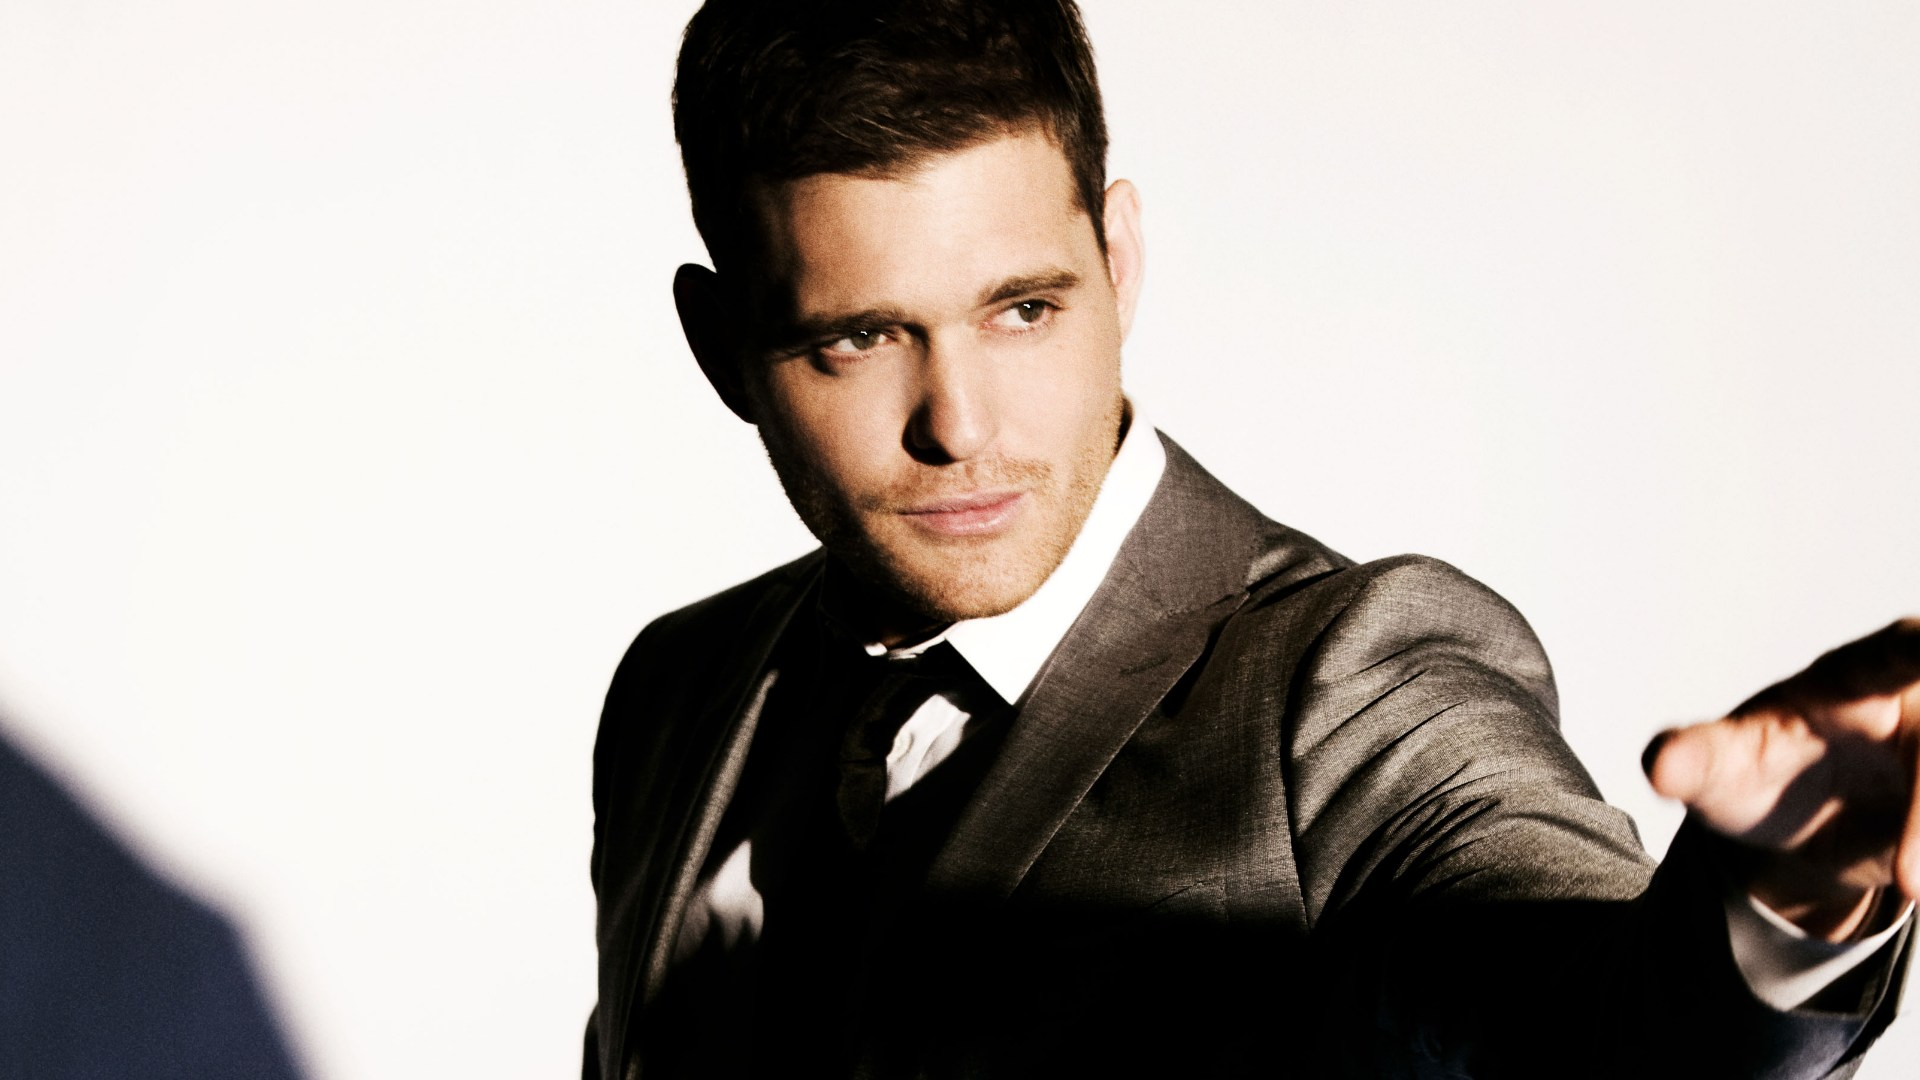 Michael Buble | Download cool HD wallpapers here.